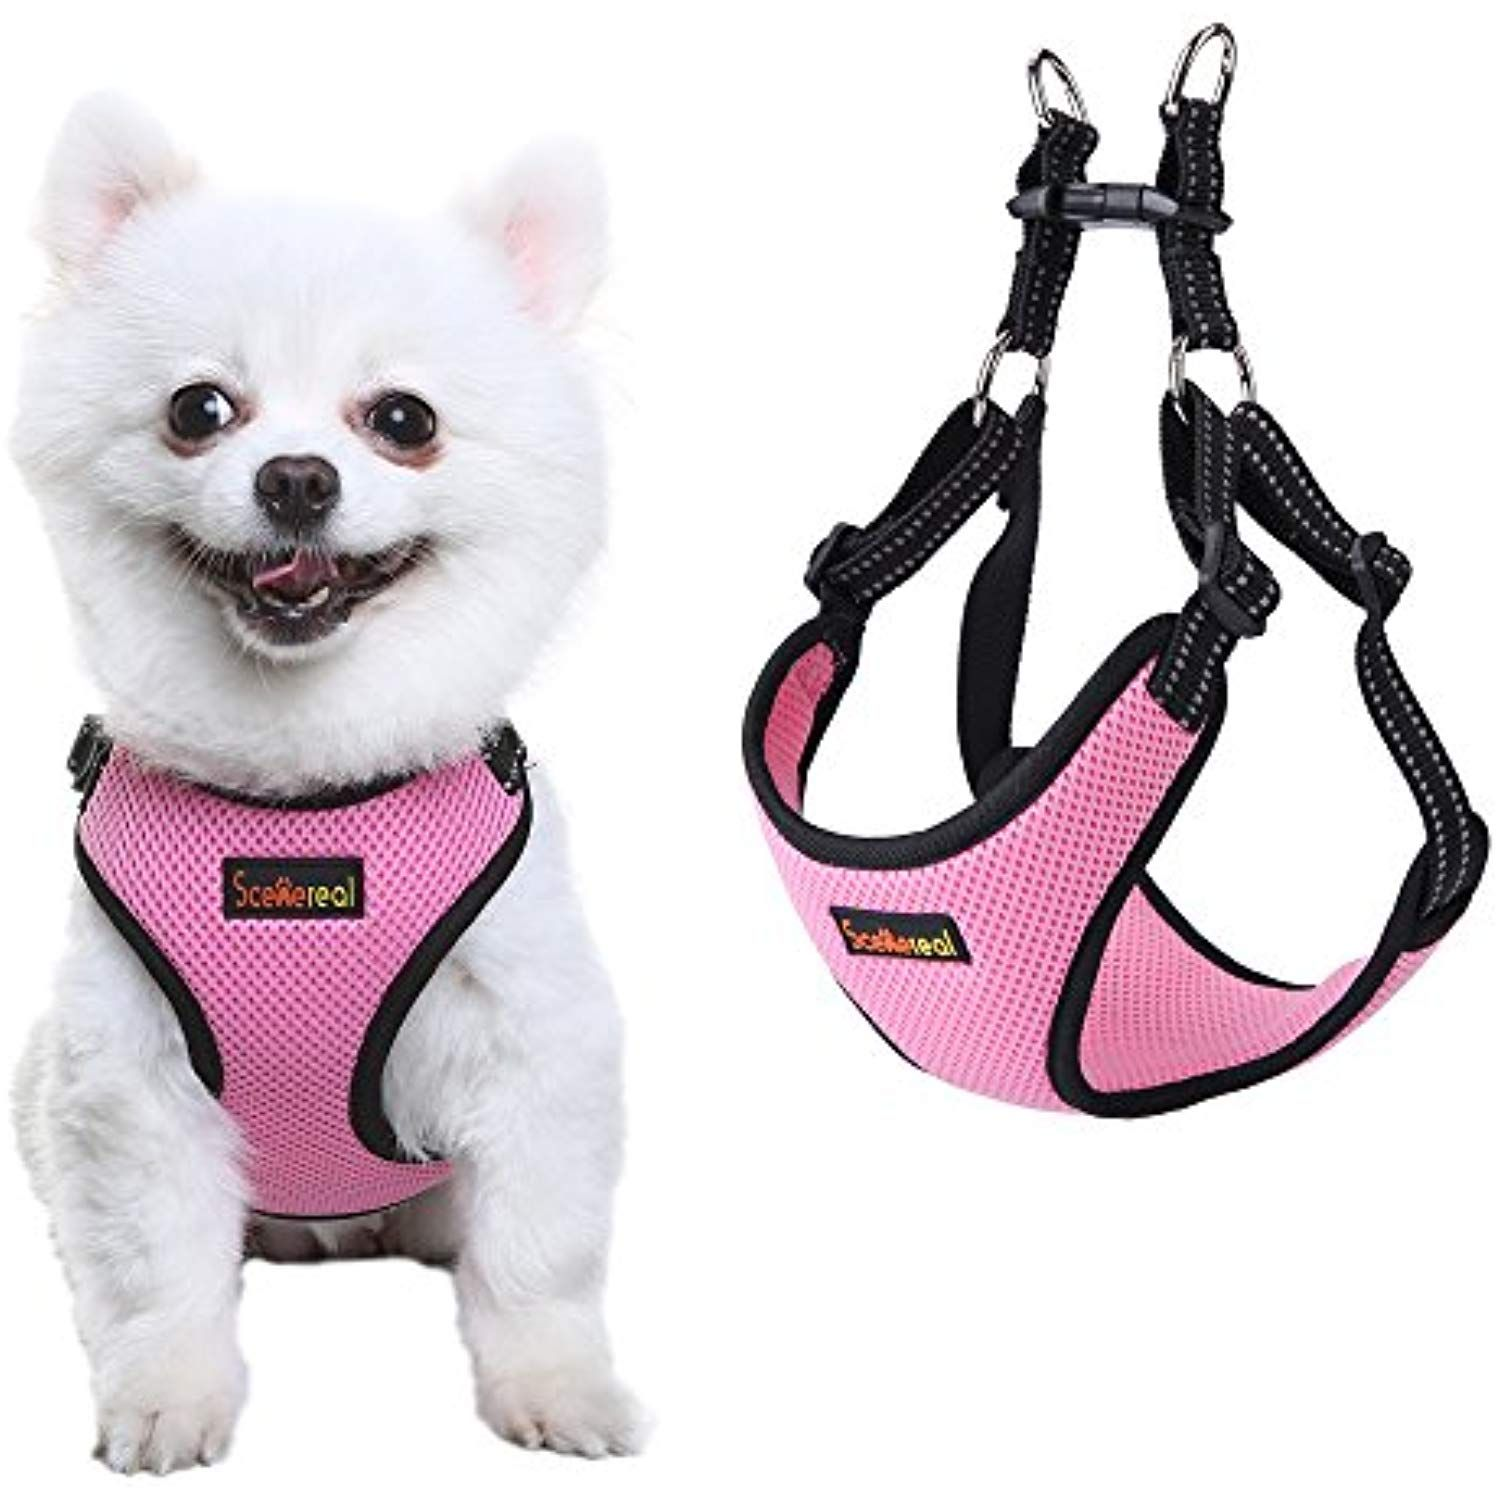 Scenereal Small Dog Harness For Puppy Cats Soft Adjustable